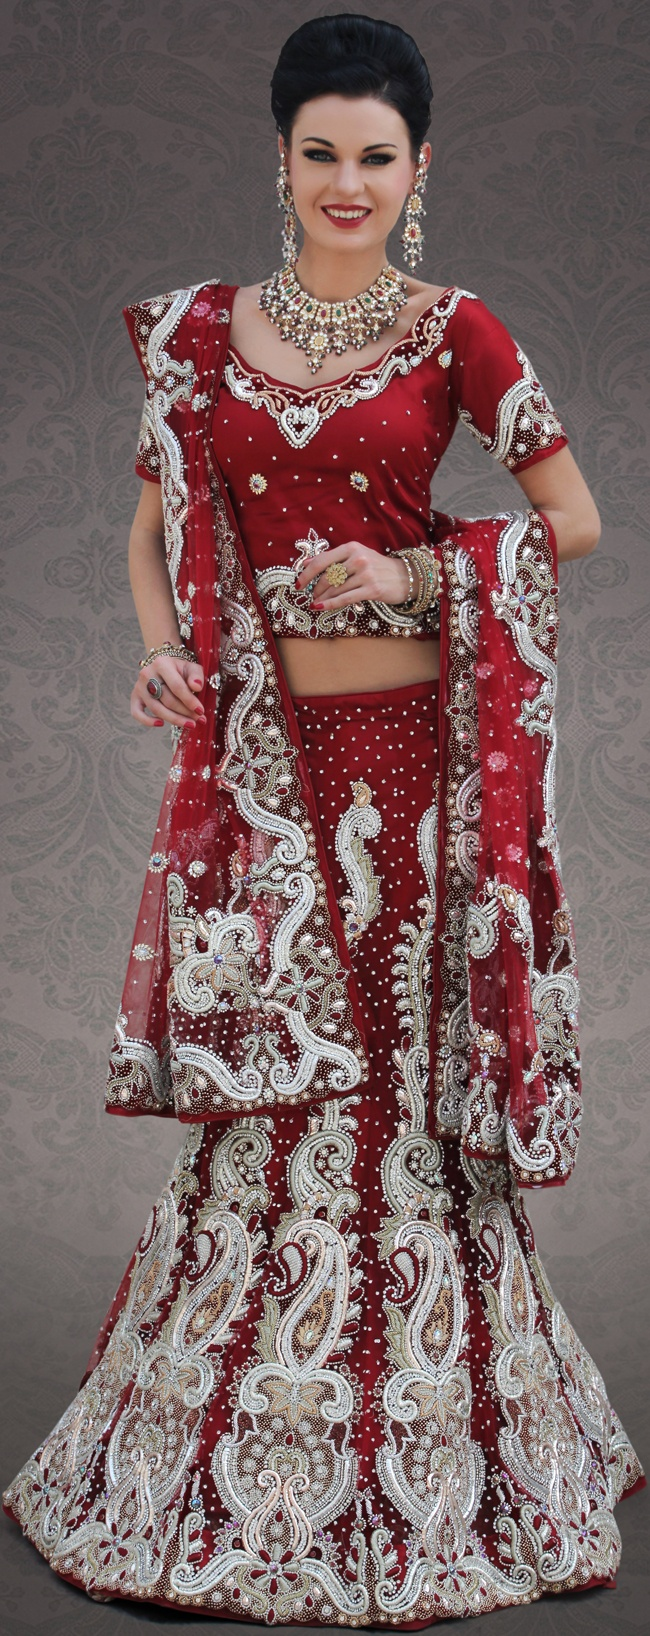 Let your personality speak for you this wedding lehenga embellished with embroidery work. This maroon net lehenga choli is nicely embroidery and velvet patch work is done with stone, zardosi, cutdana, beads and cutbeads work. All over embroidery work on lehenga is stunning. The beautiful heavy embroidery on lehenga made it awesome and gives you stylish and attractive look to others. Matching choli and dupatta is availble with this lehenga.